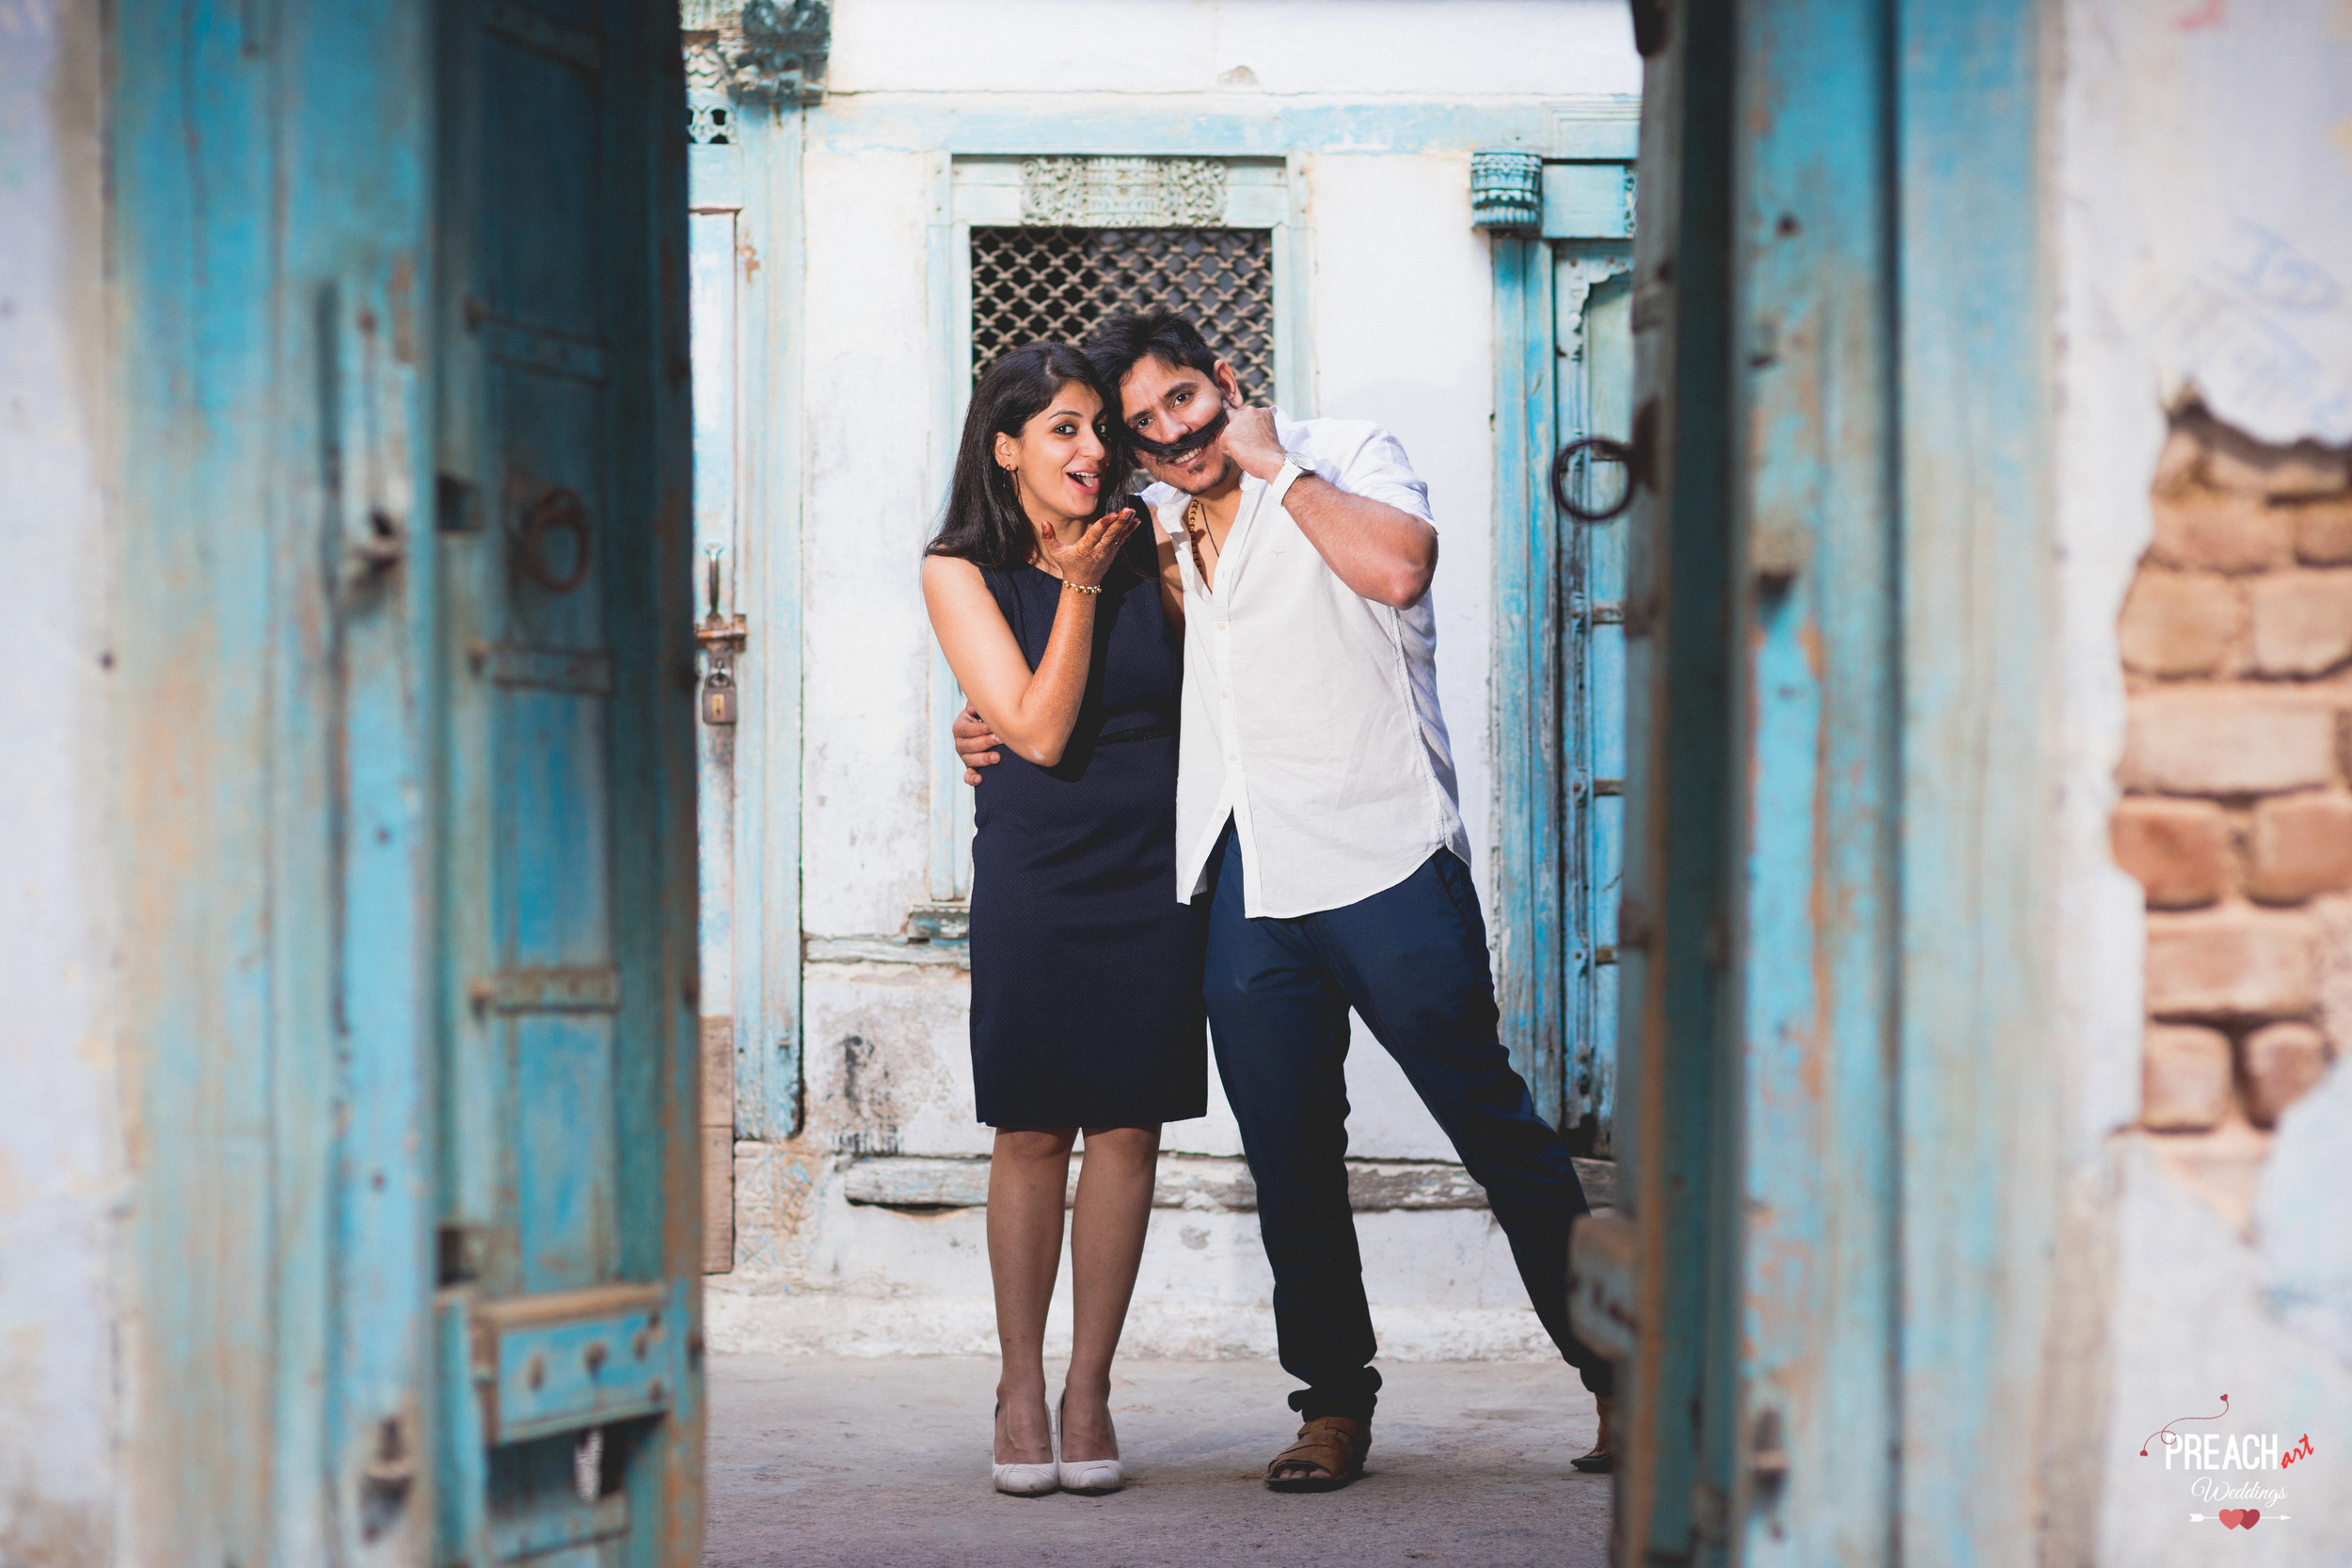 V&M_PRE-WEDDING SHOOT_AHMEDABAD OLD CITY_PREACH ART-30.jpg